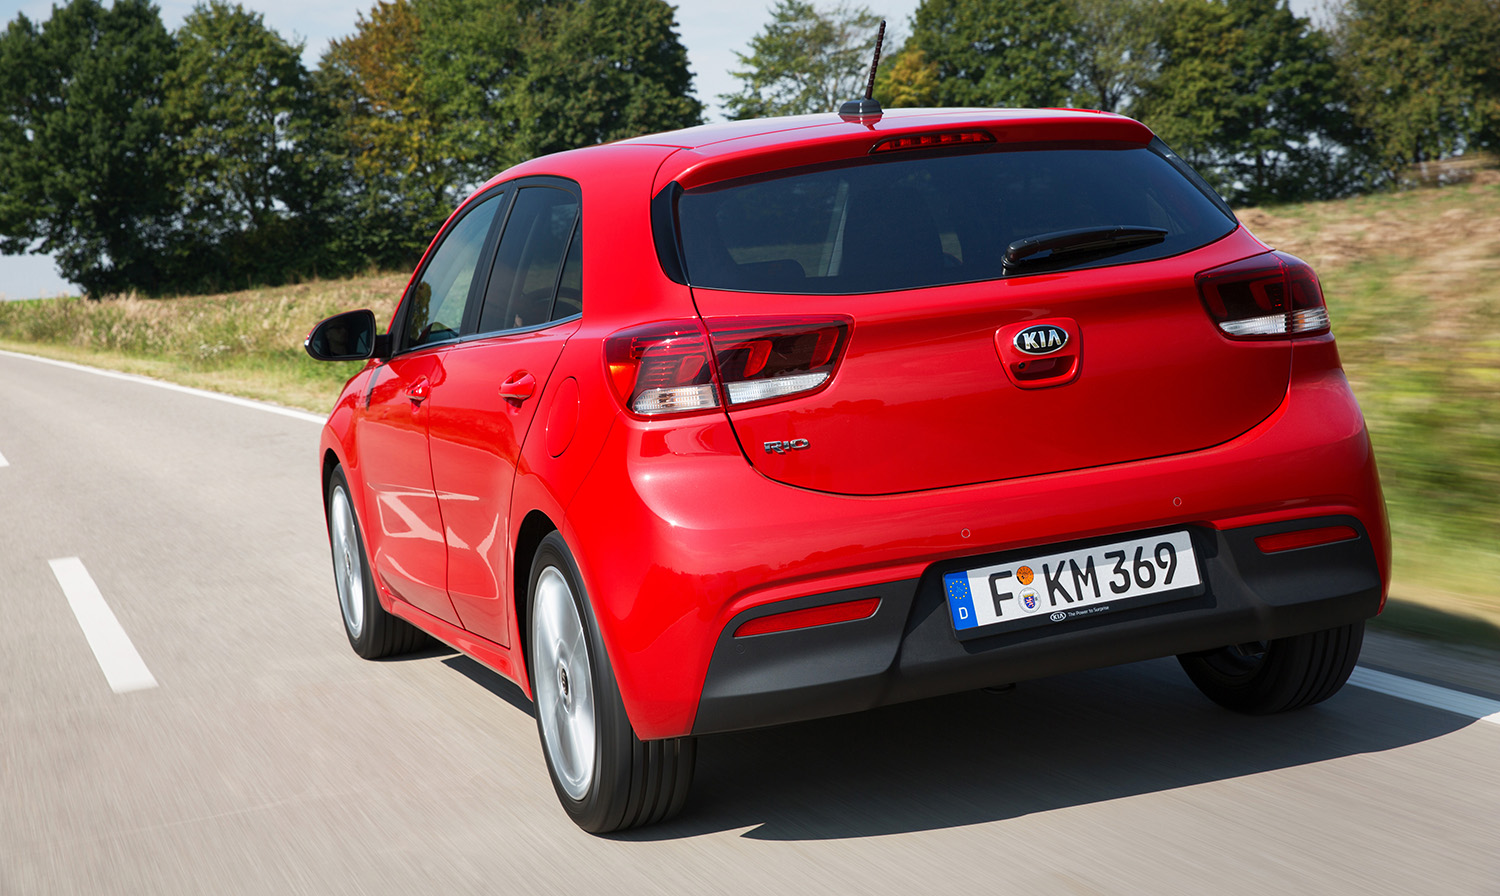 2017 kia rio detailed ahead of paris premiere photos 1 of 15. Black Bedroom Furniture Sets. Home Design Ideas